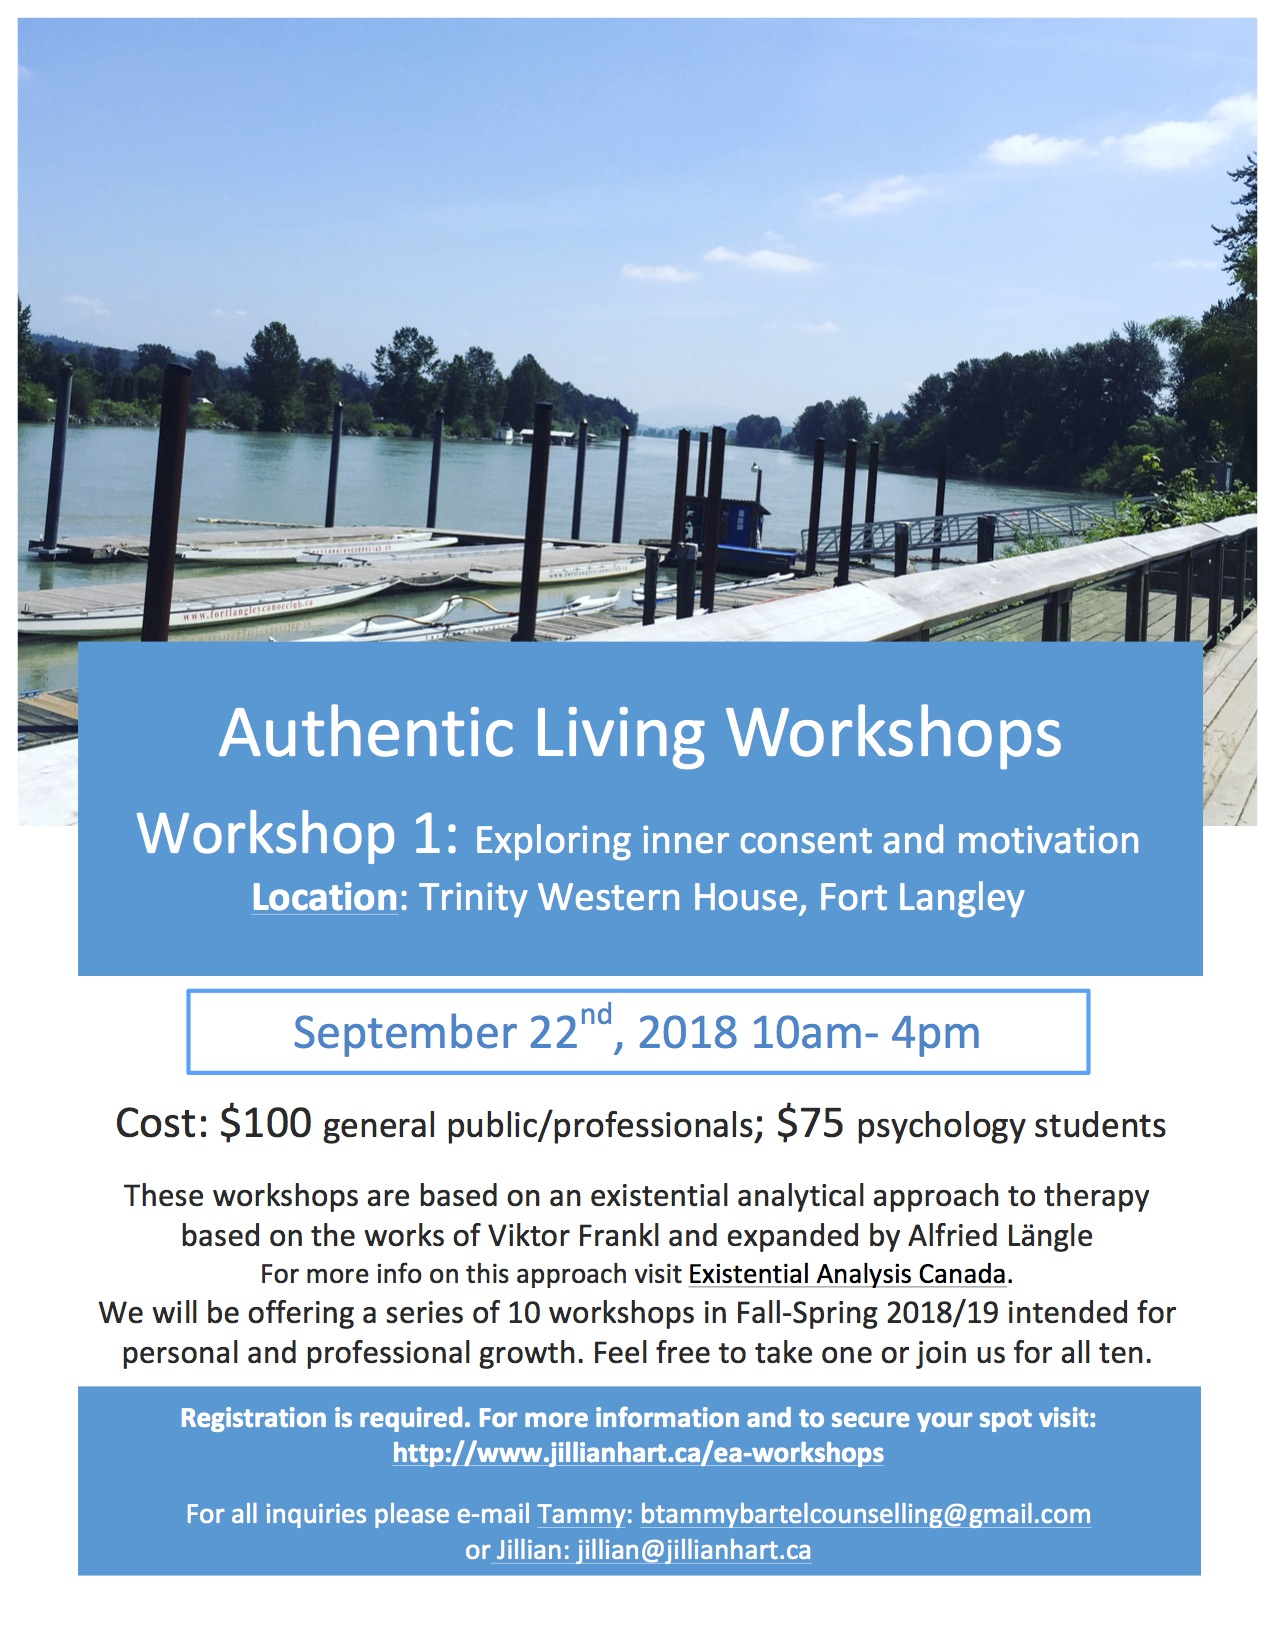 Authentic Living Workshops Spring 2019 - Existential Analysis Canada